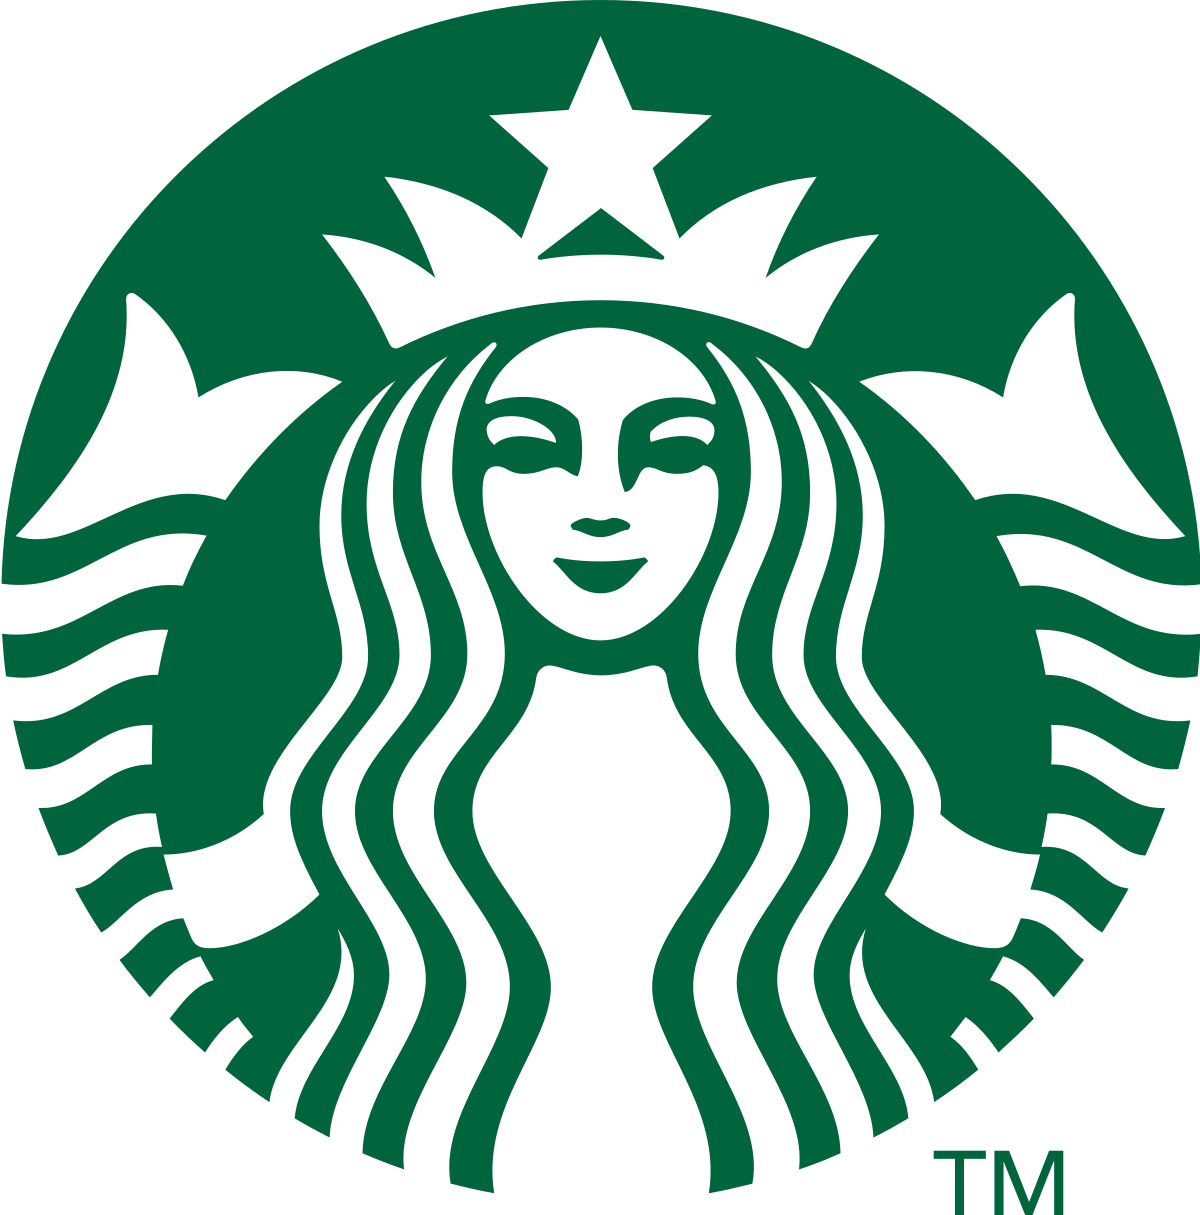 Best Coffee Shop Logo - Starbucks